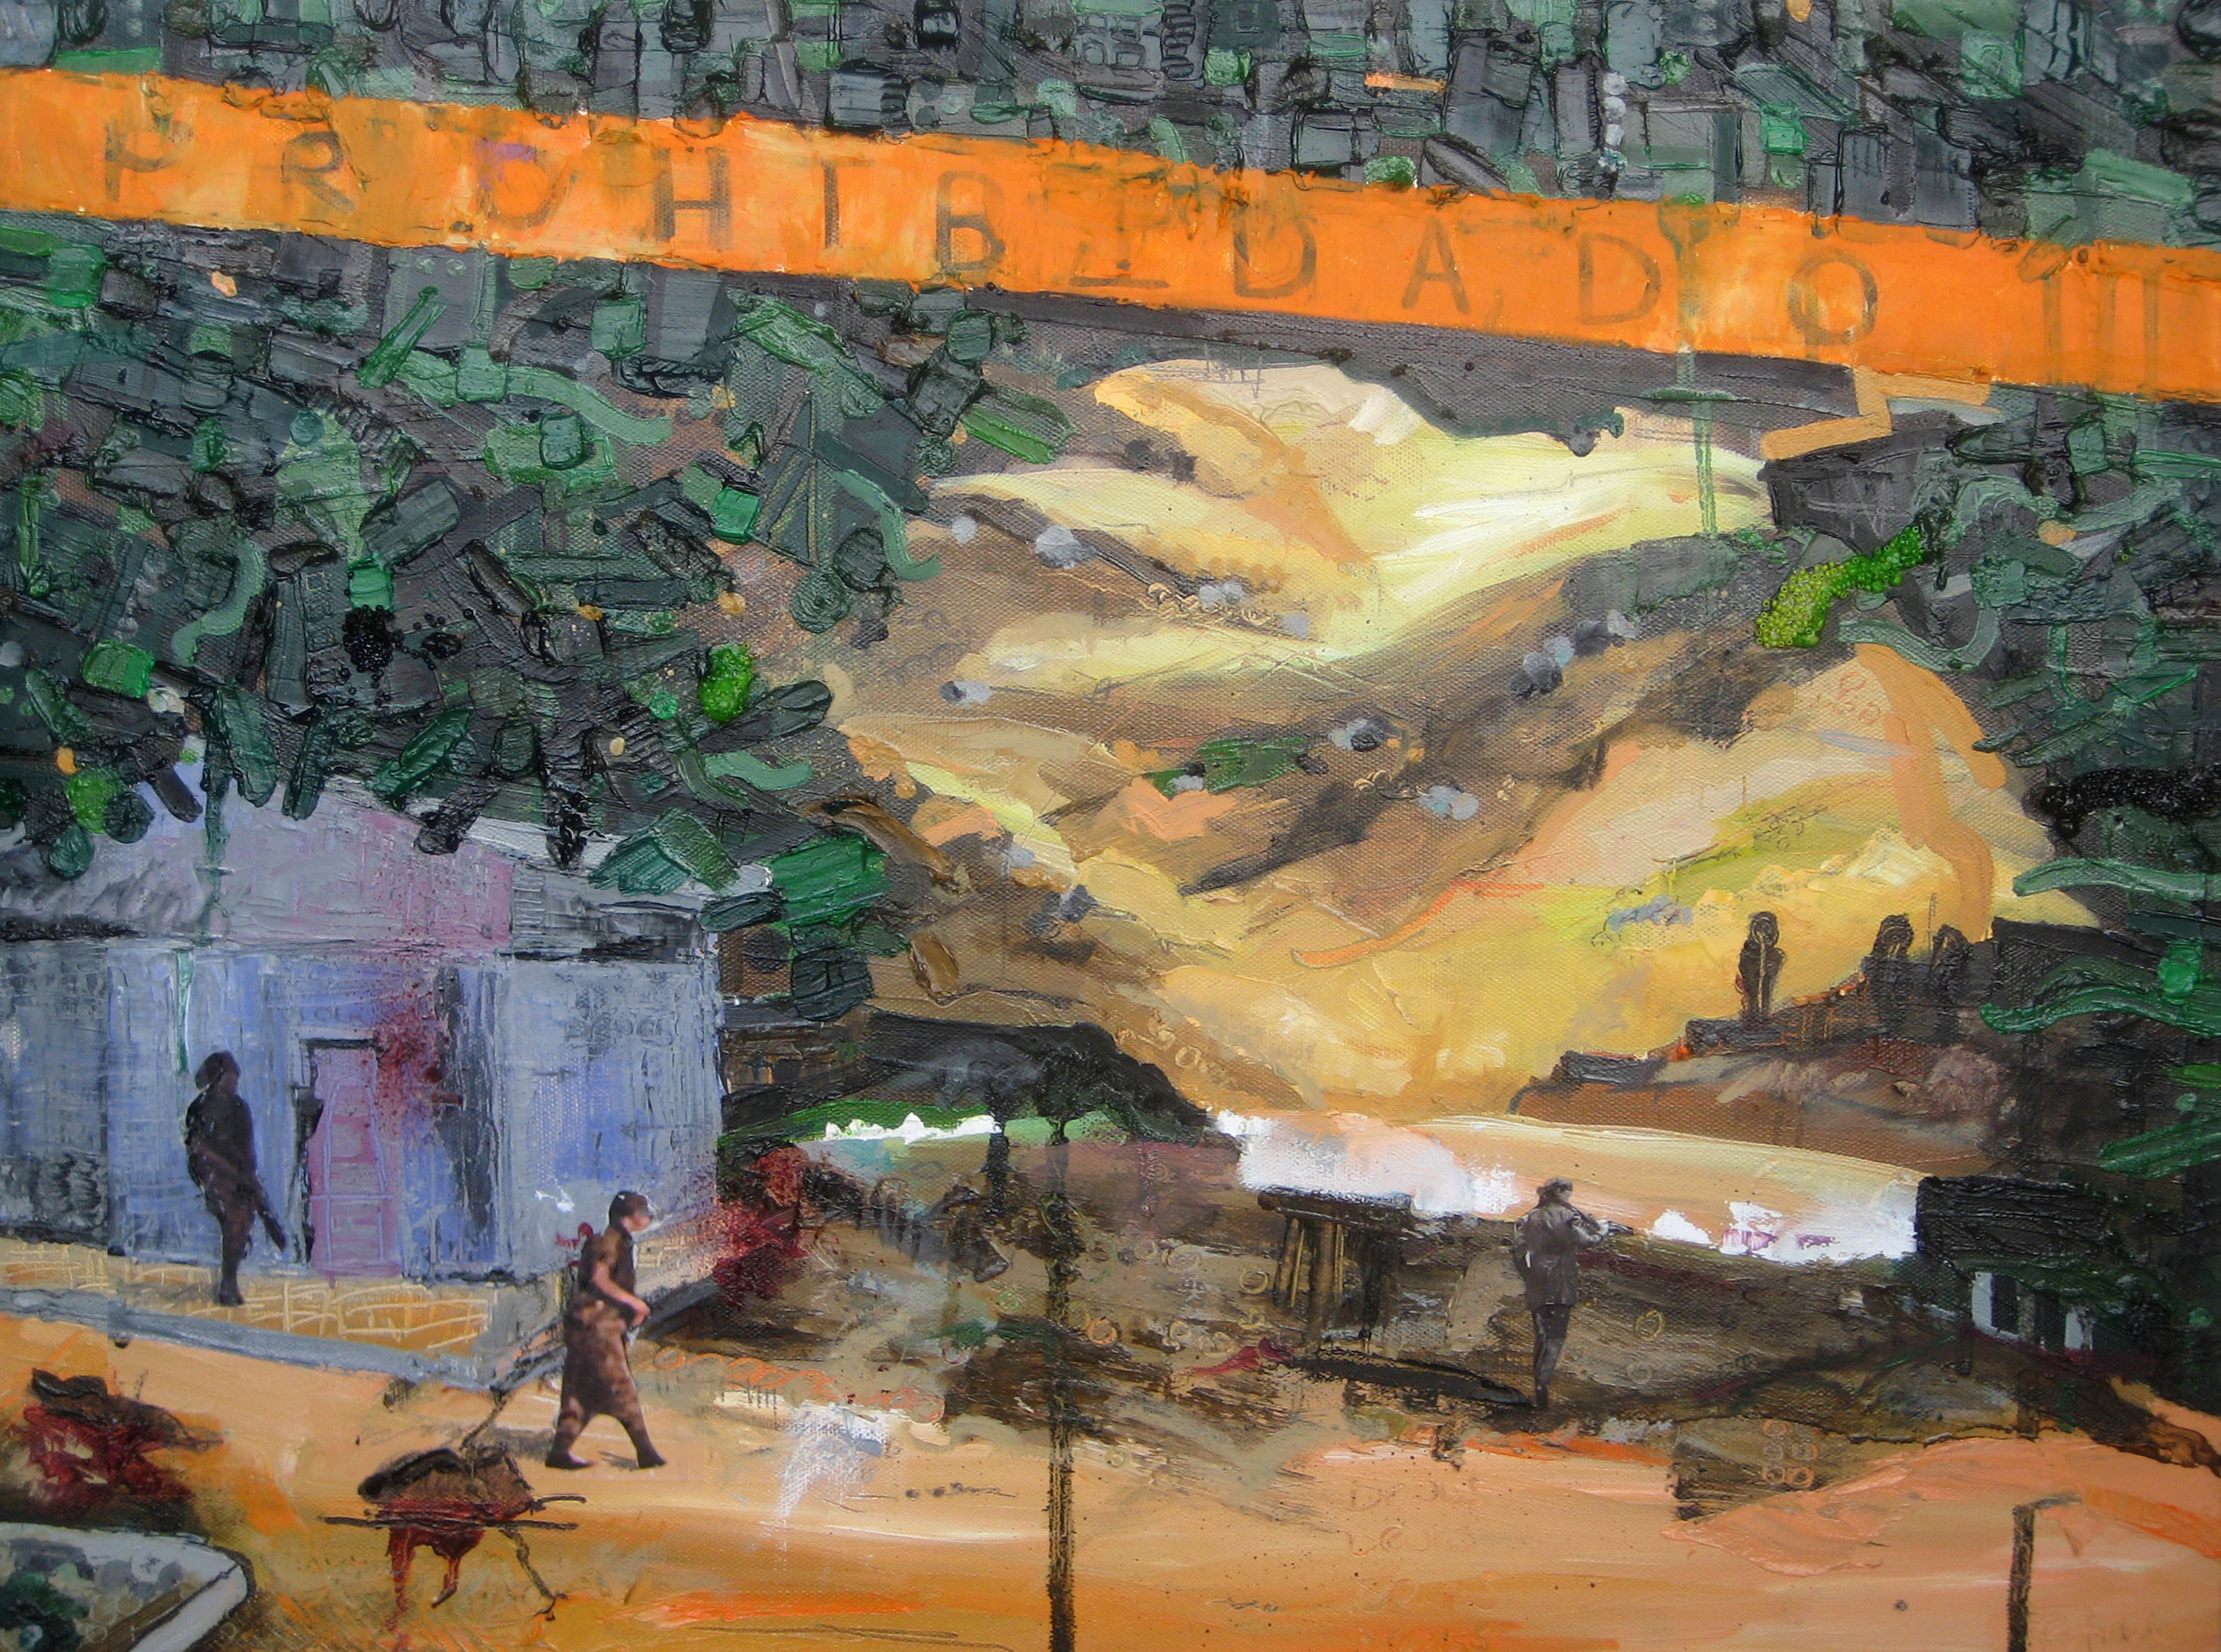 Juarez, 2010, Oil and Mixed Media on canvas, 18 x 24 inches